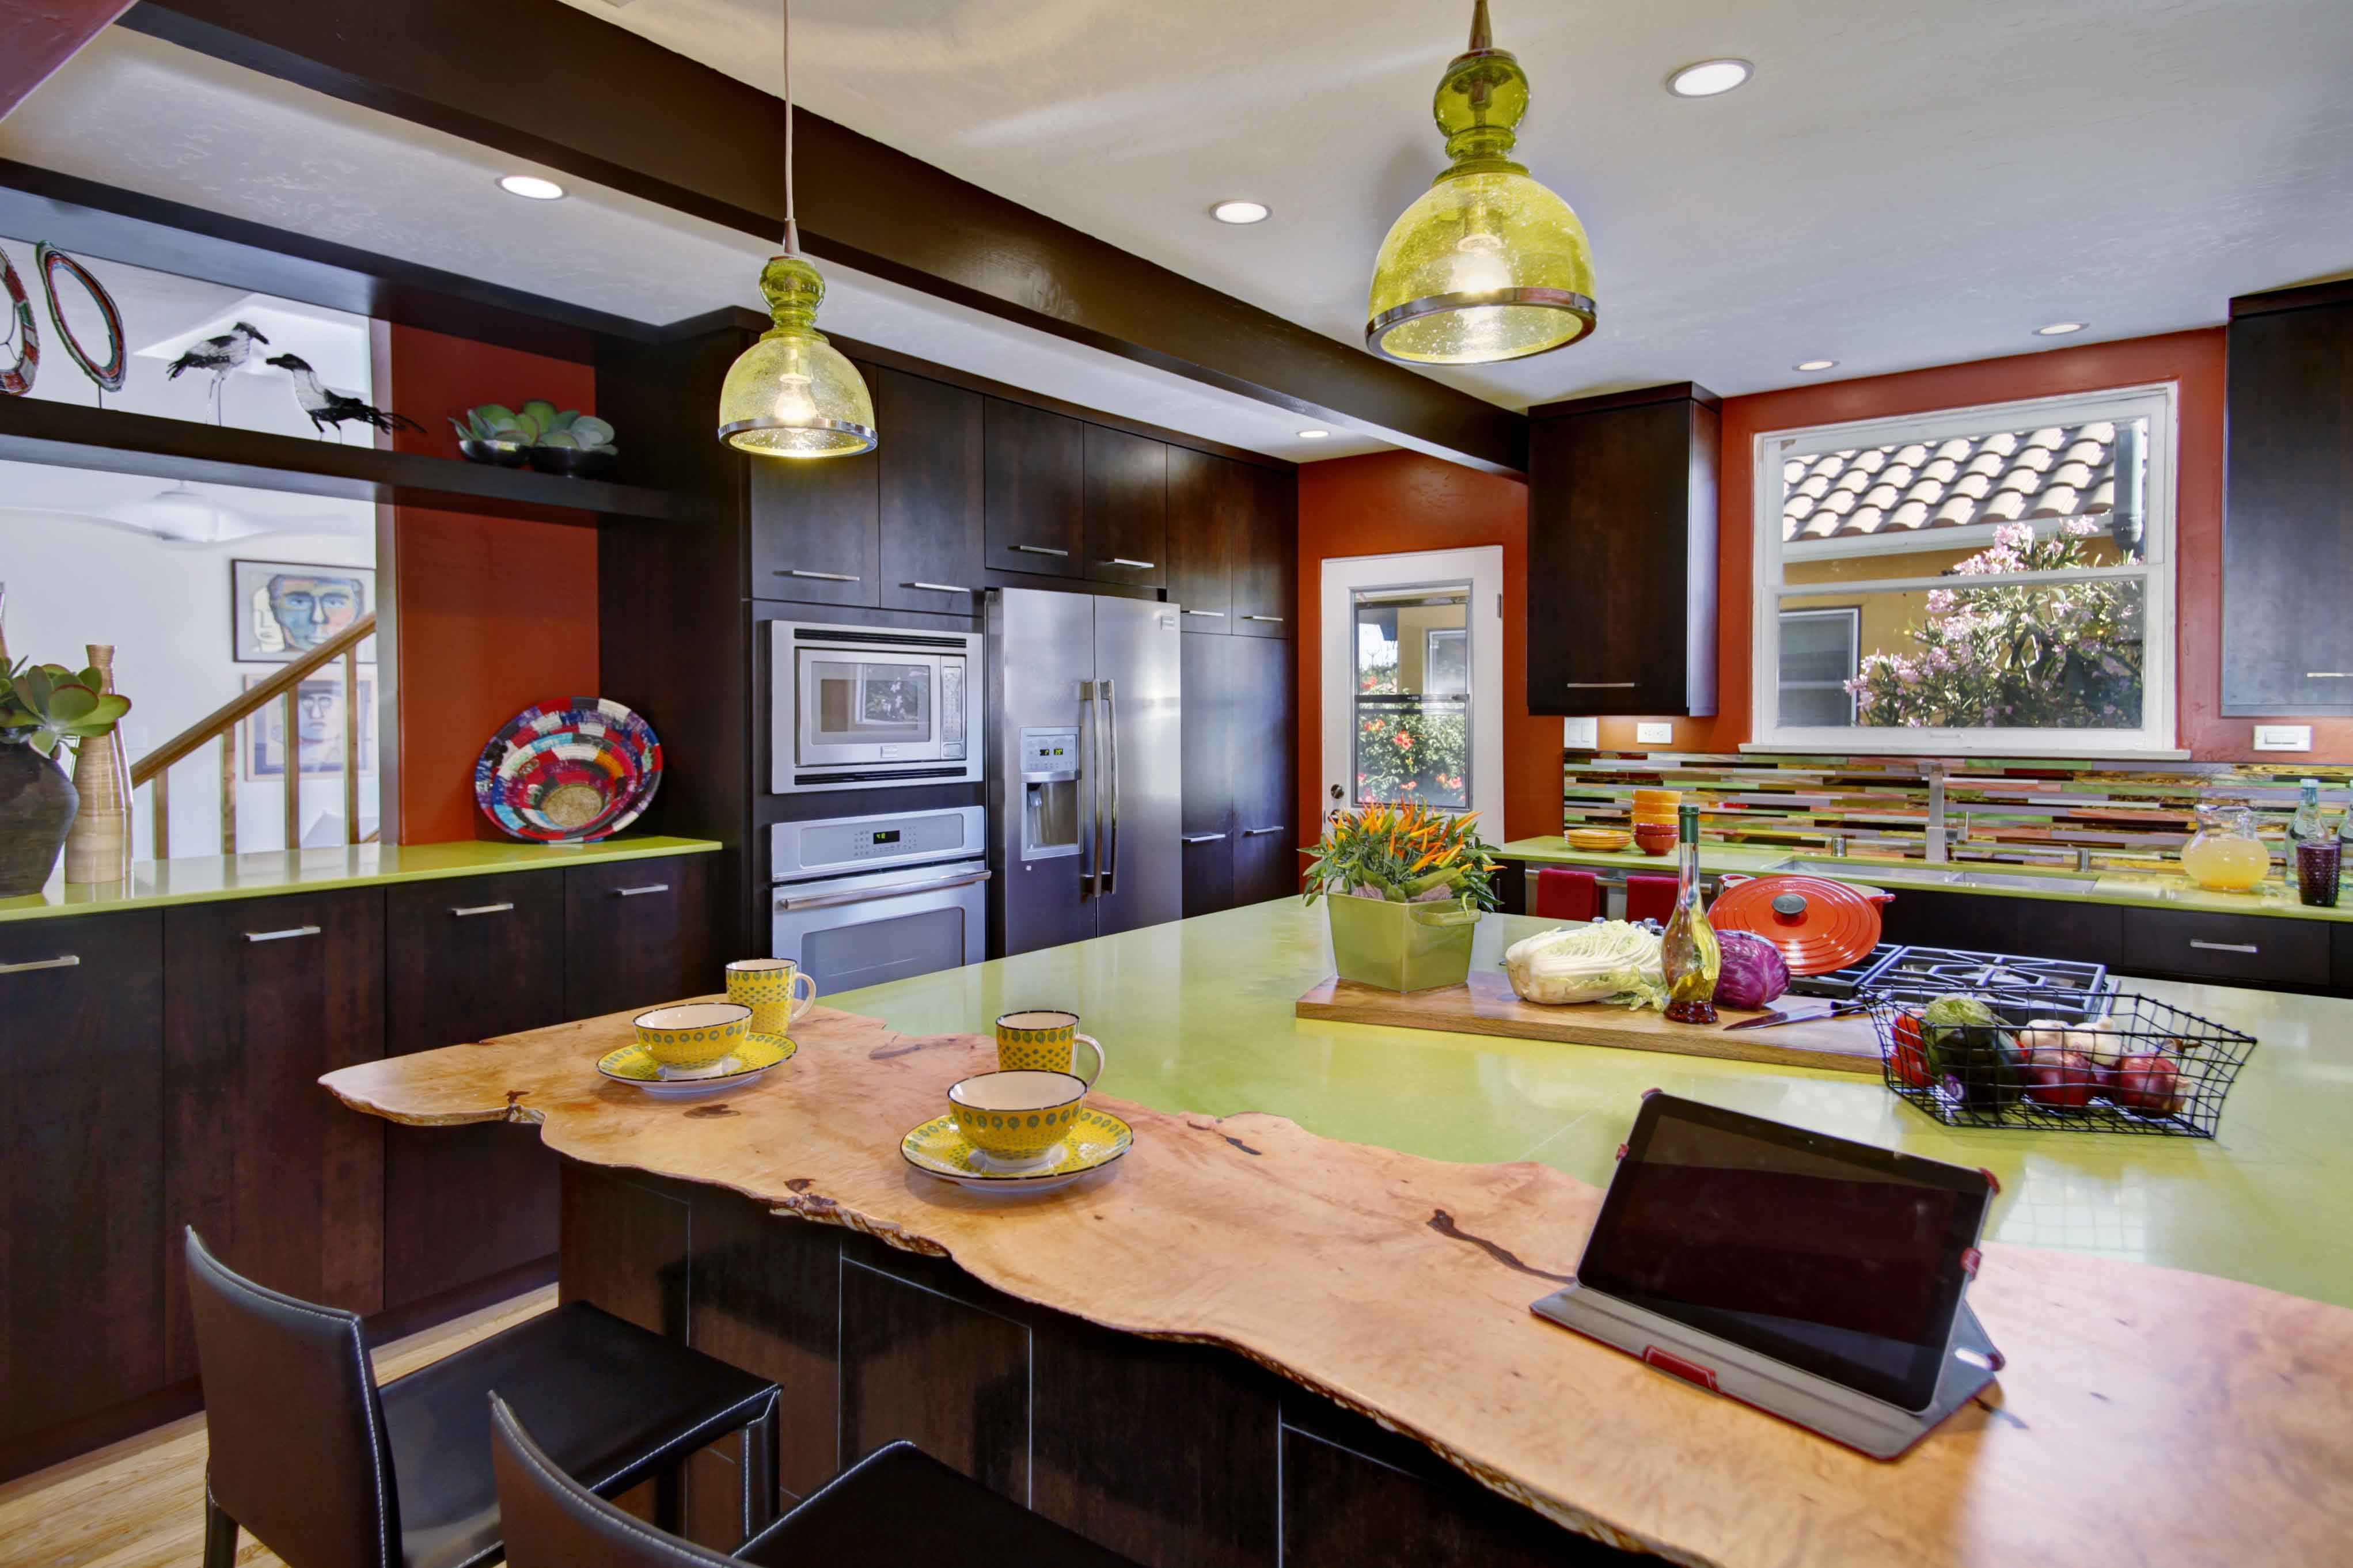 Island Cooktops Central To An Open Kitchen And Dining Space